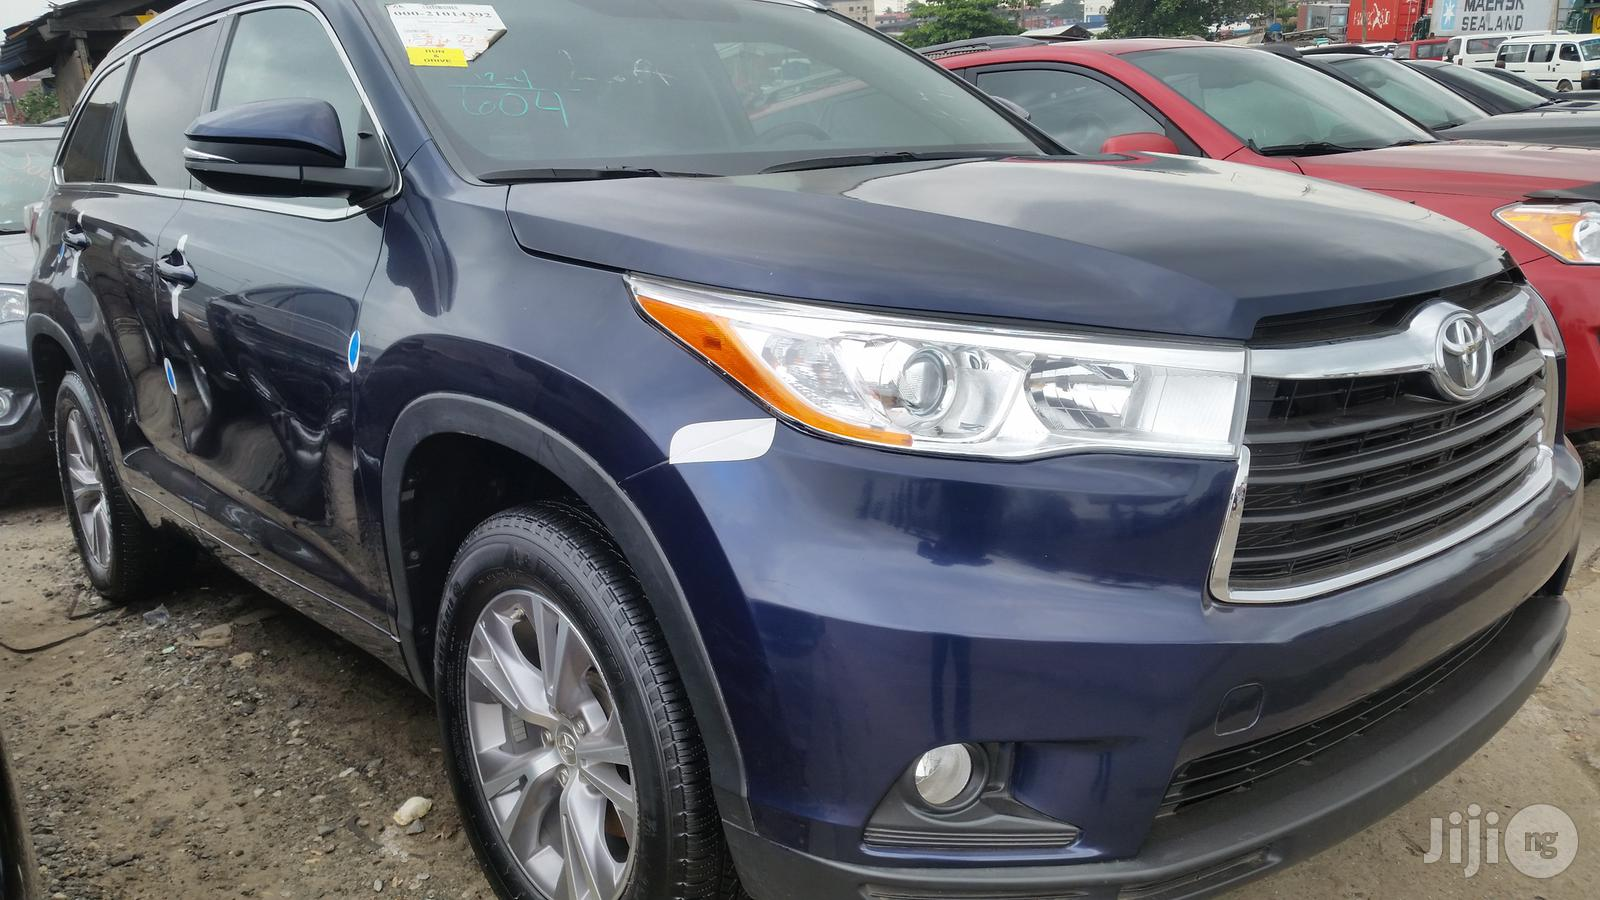 Tokunbo Toyota Highlander 2015 Blue In Lagos State Cars Obj Automobile Gmi Jiji Ng For Sale In Lagos Buy Cars From Obj Automobile Gmi On Jiji Ng